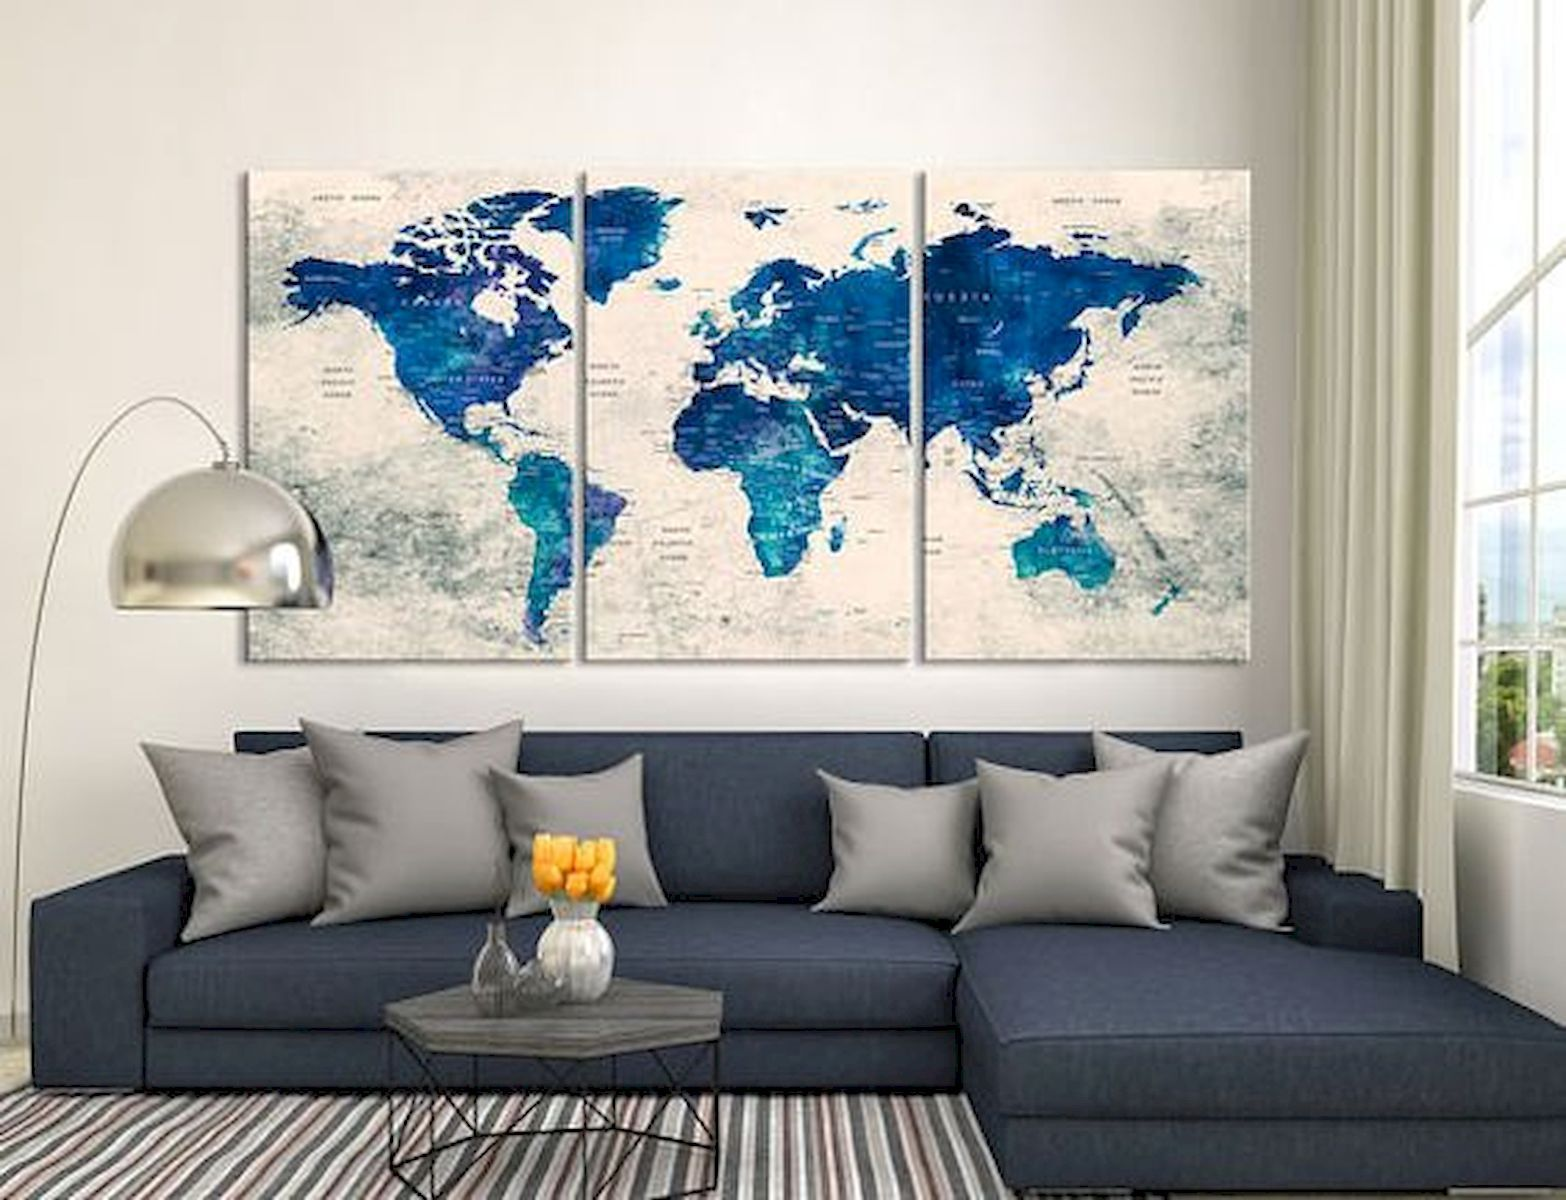 Gorgeous 60 Most Elegant Wall Art Ideas For Living Room Makeover Https Roomadness Com 2018 07 27 60 Most Elegant W World Map Decor Map Decor World Map Canvas